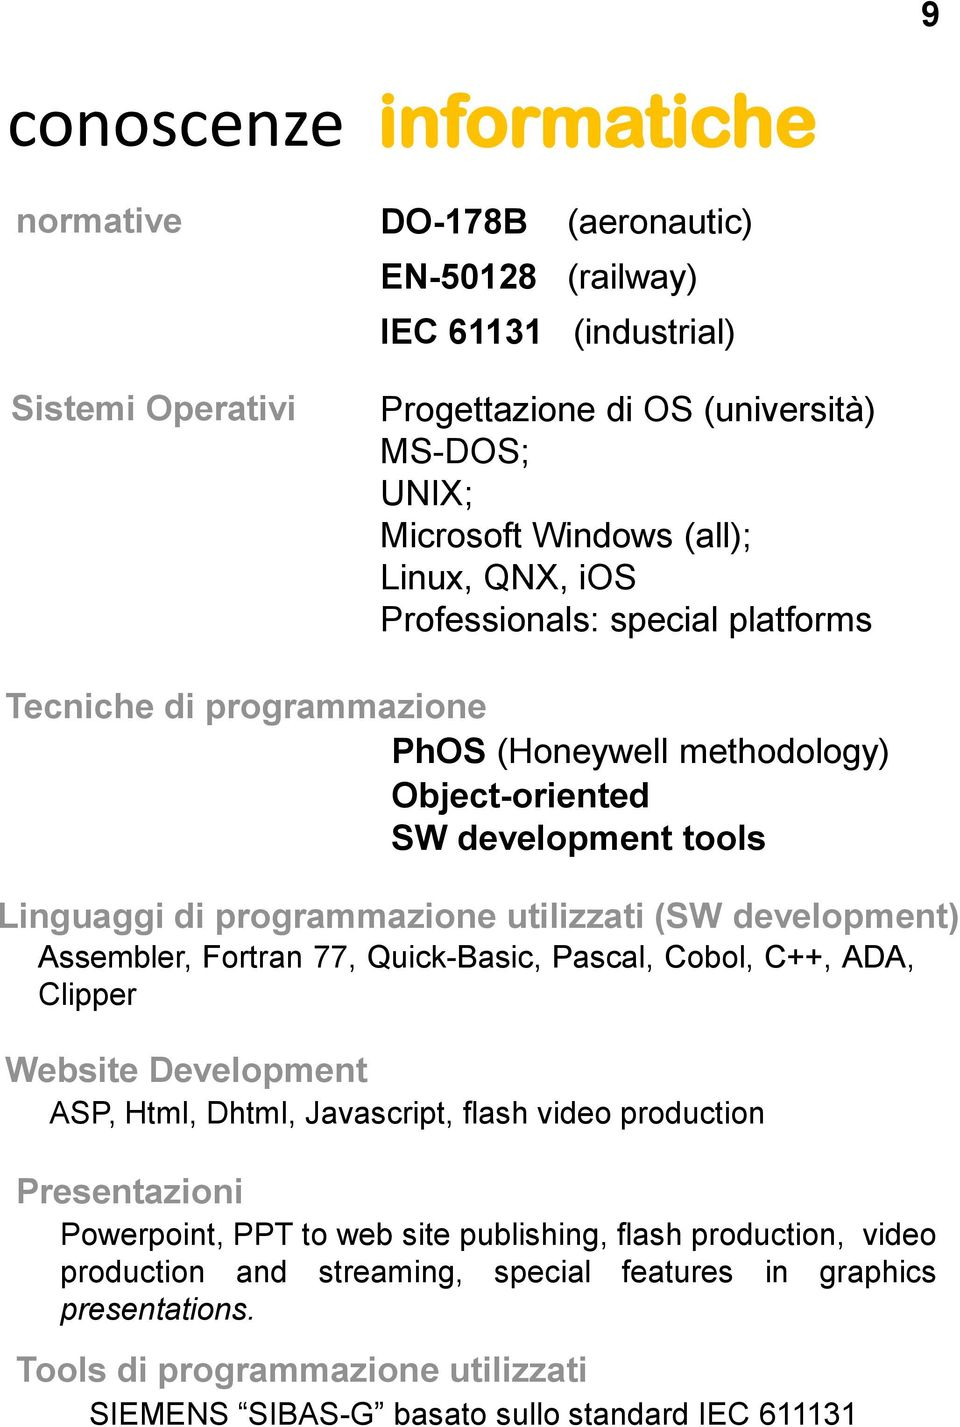 development) Assembler, Fortran 77, Quick-Basic, Pascal, Cobol, C++, ADA, Clipper Website Development ASP, Html, Dhtml, Javascript, flash video production Presentazioni Powerpoint, PPT to